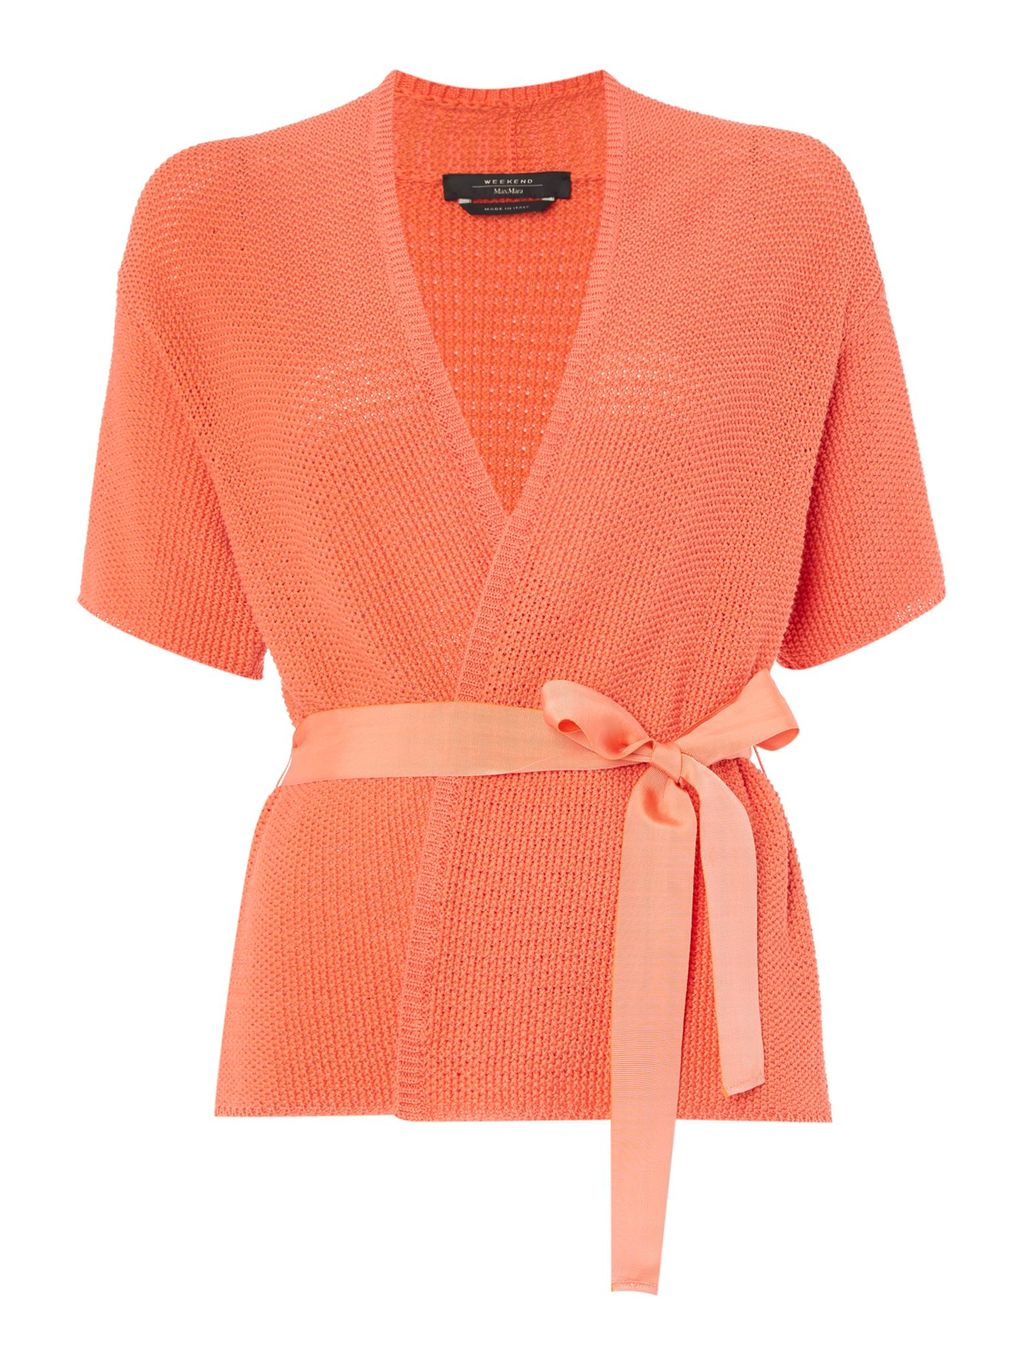 Blanc Short Sleeve Chunky Cardigan With Belt, Coral - neckline: low v-neck; pattern: plain; style: wrap; predominant colour: coral; length: standard; fibres: cotton - 100%; occasions: occasion, creative work; fit: slim fit; waist detail: belted waist/tie at waist/drawstring; sleeve length: half sleeve; sleeve style: standard; texture group: knits/crochet; pattern type: knitted - fine stitch; season: s/s 2016; wardrobe: highlight